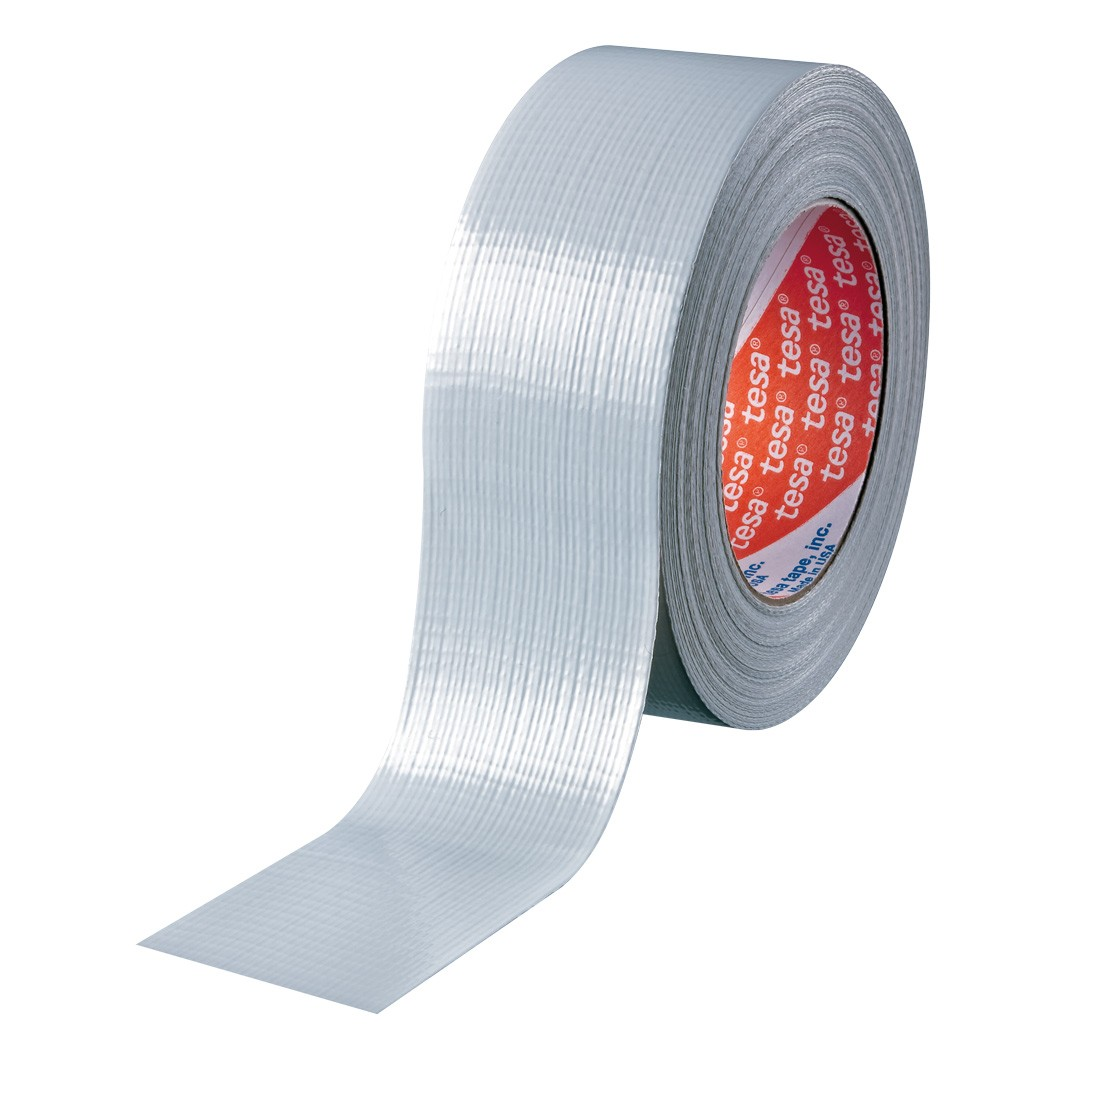 Duct tape the ending